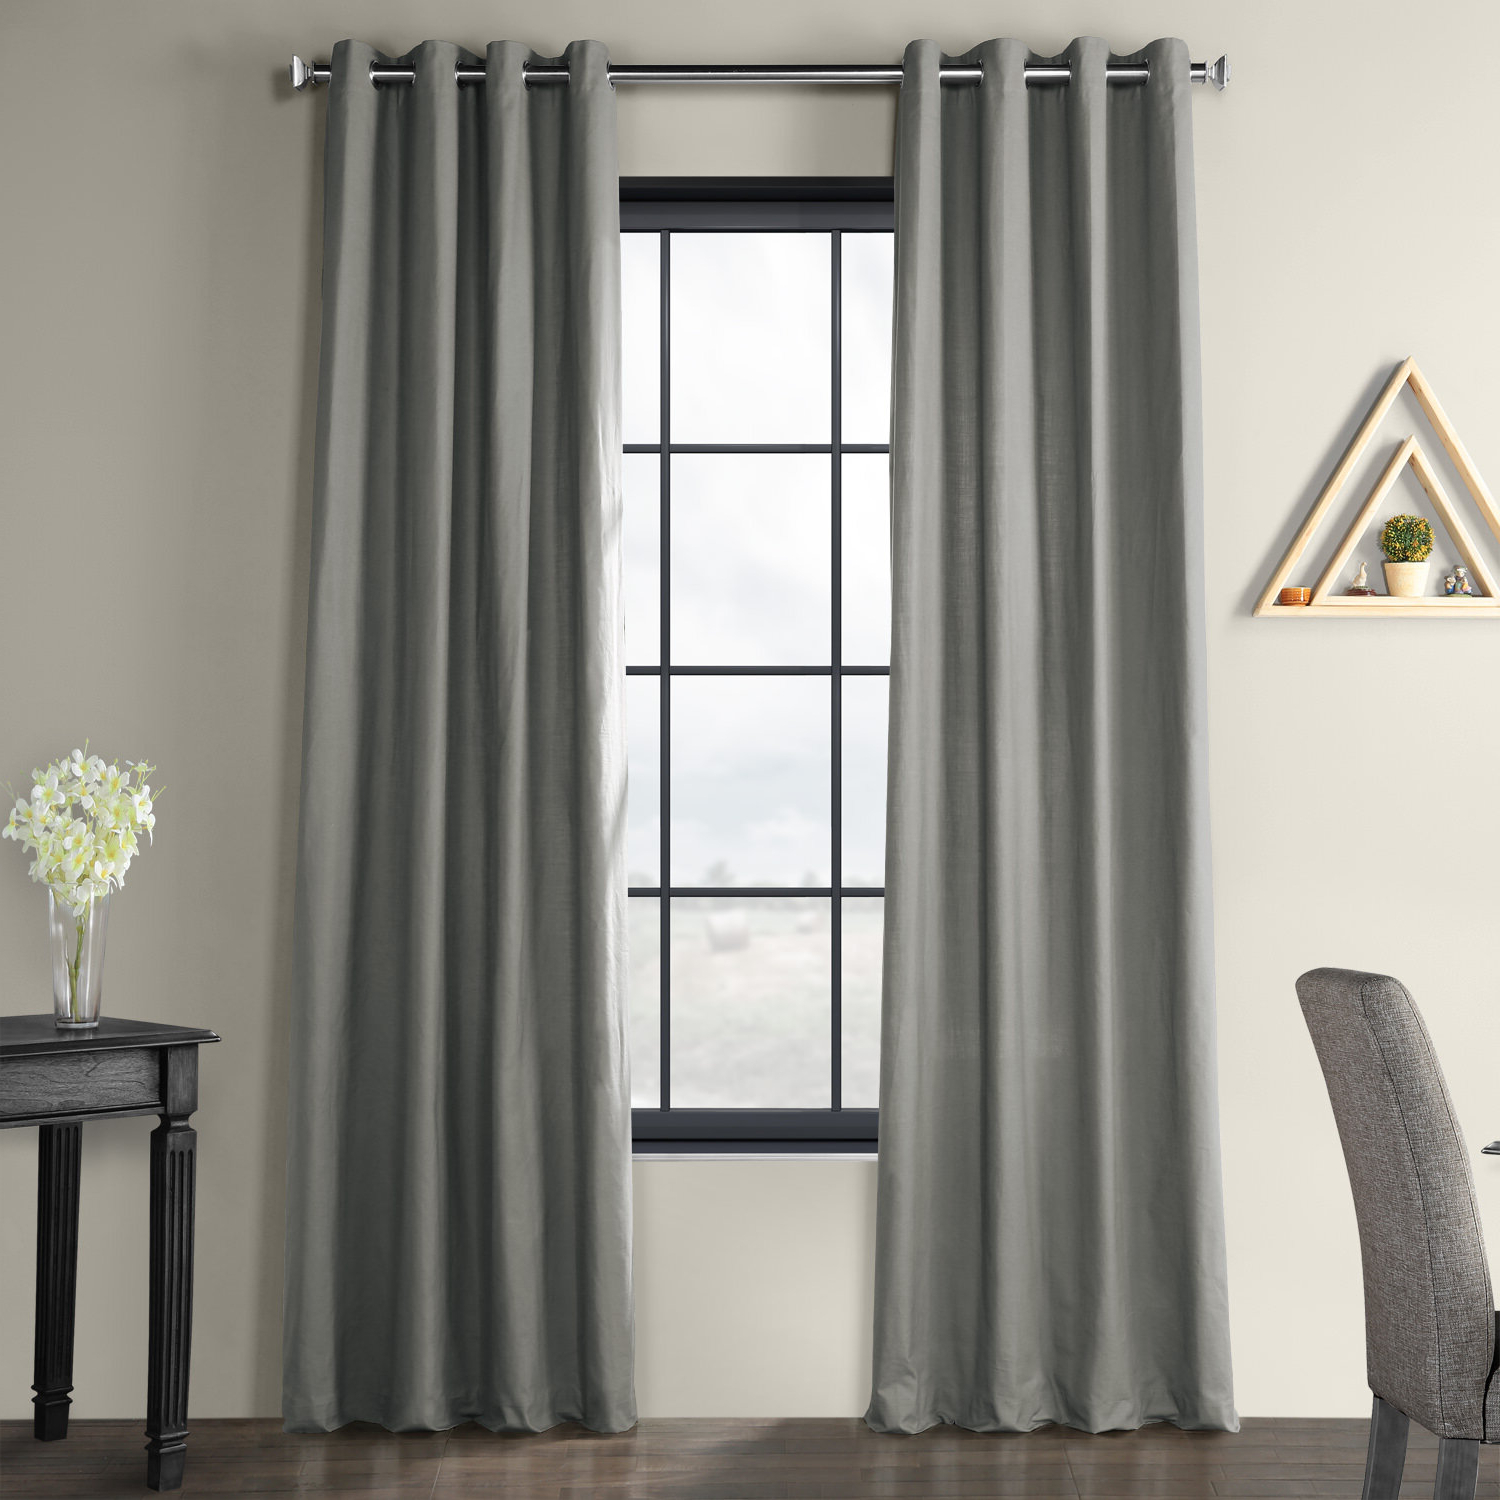 Well Liked Solid Country Cotton Linen Weave Grommet Indoor Single Curtain Pane Within Solid Country Cotton Linen Weave Curtain Panels (View 20 of 20)